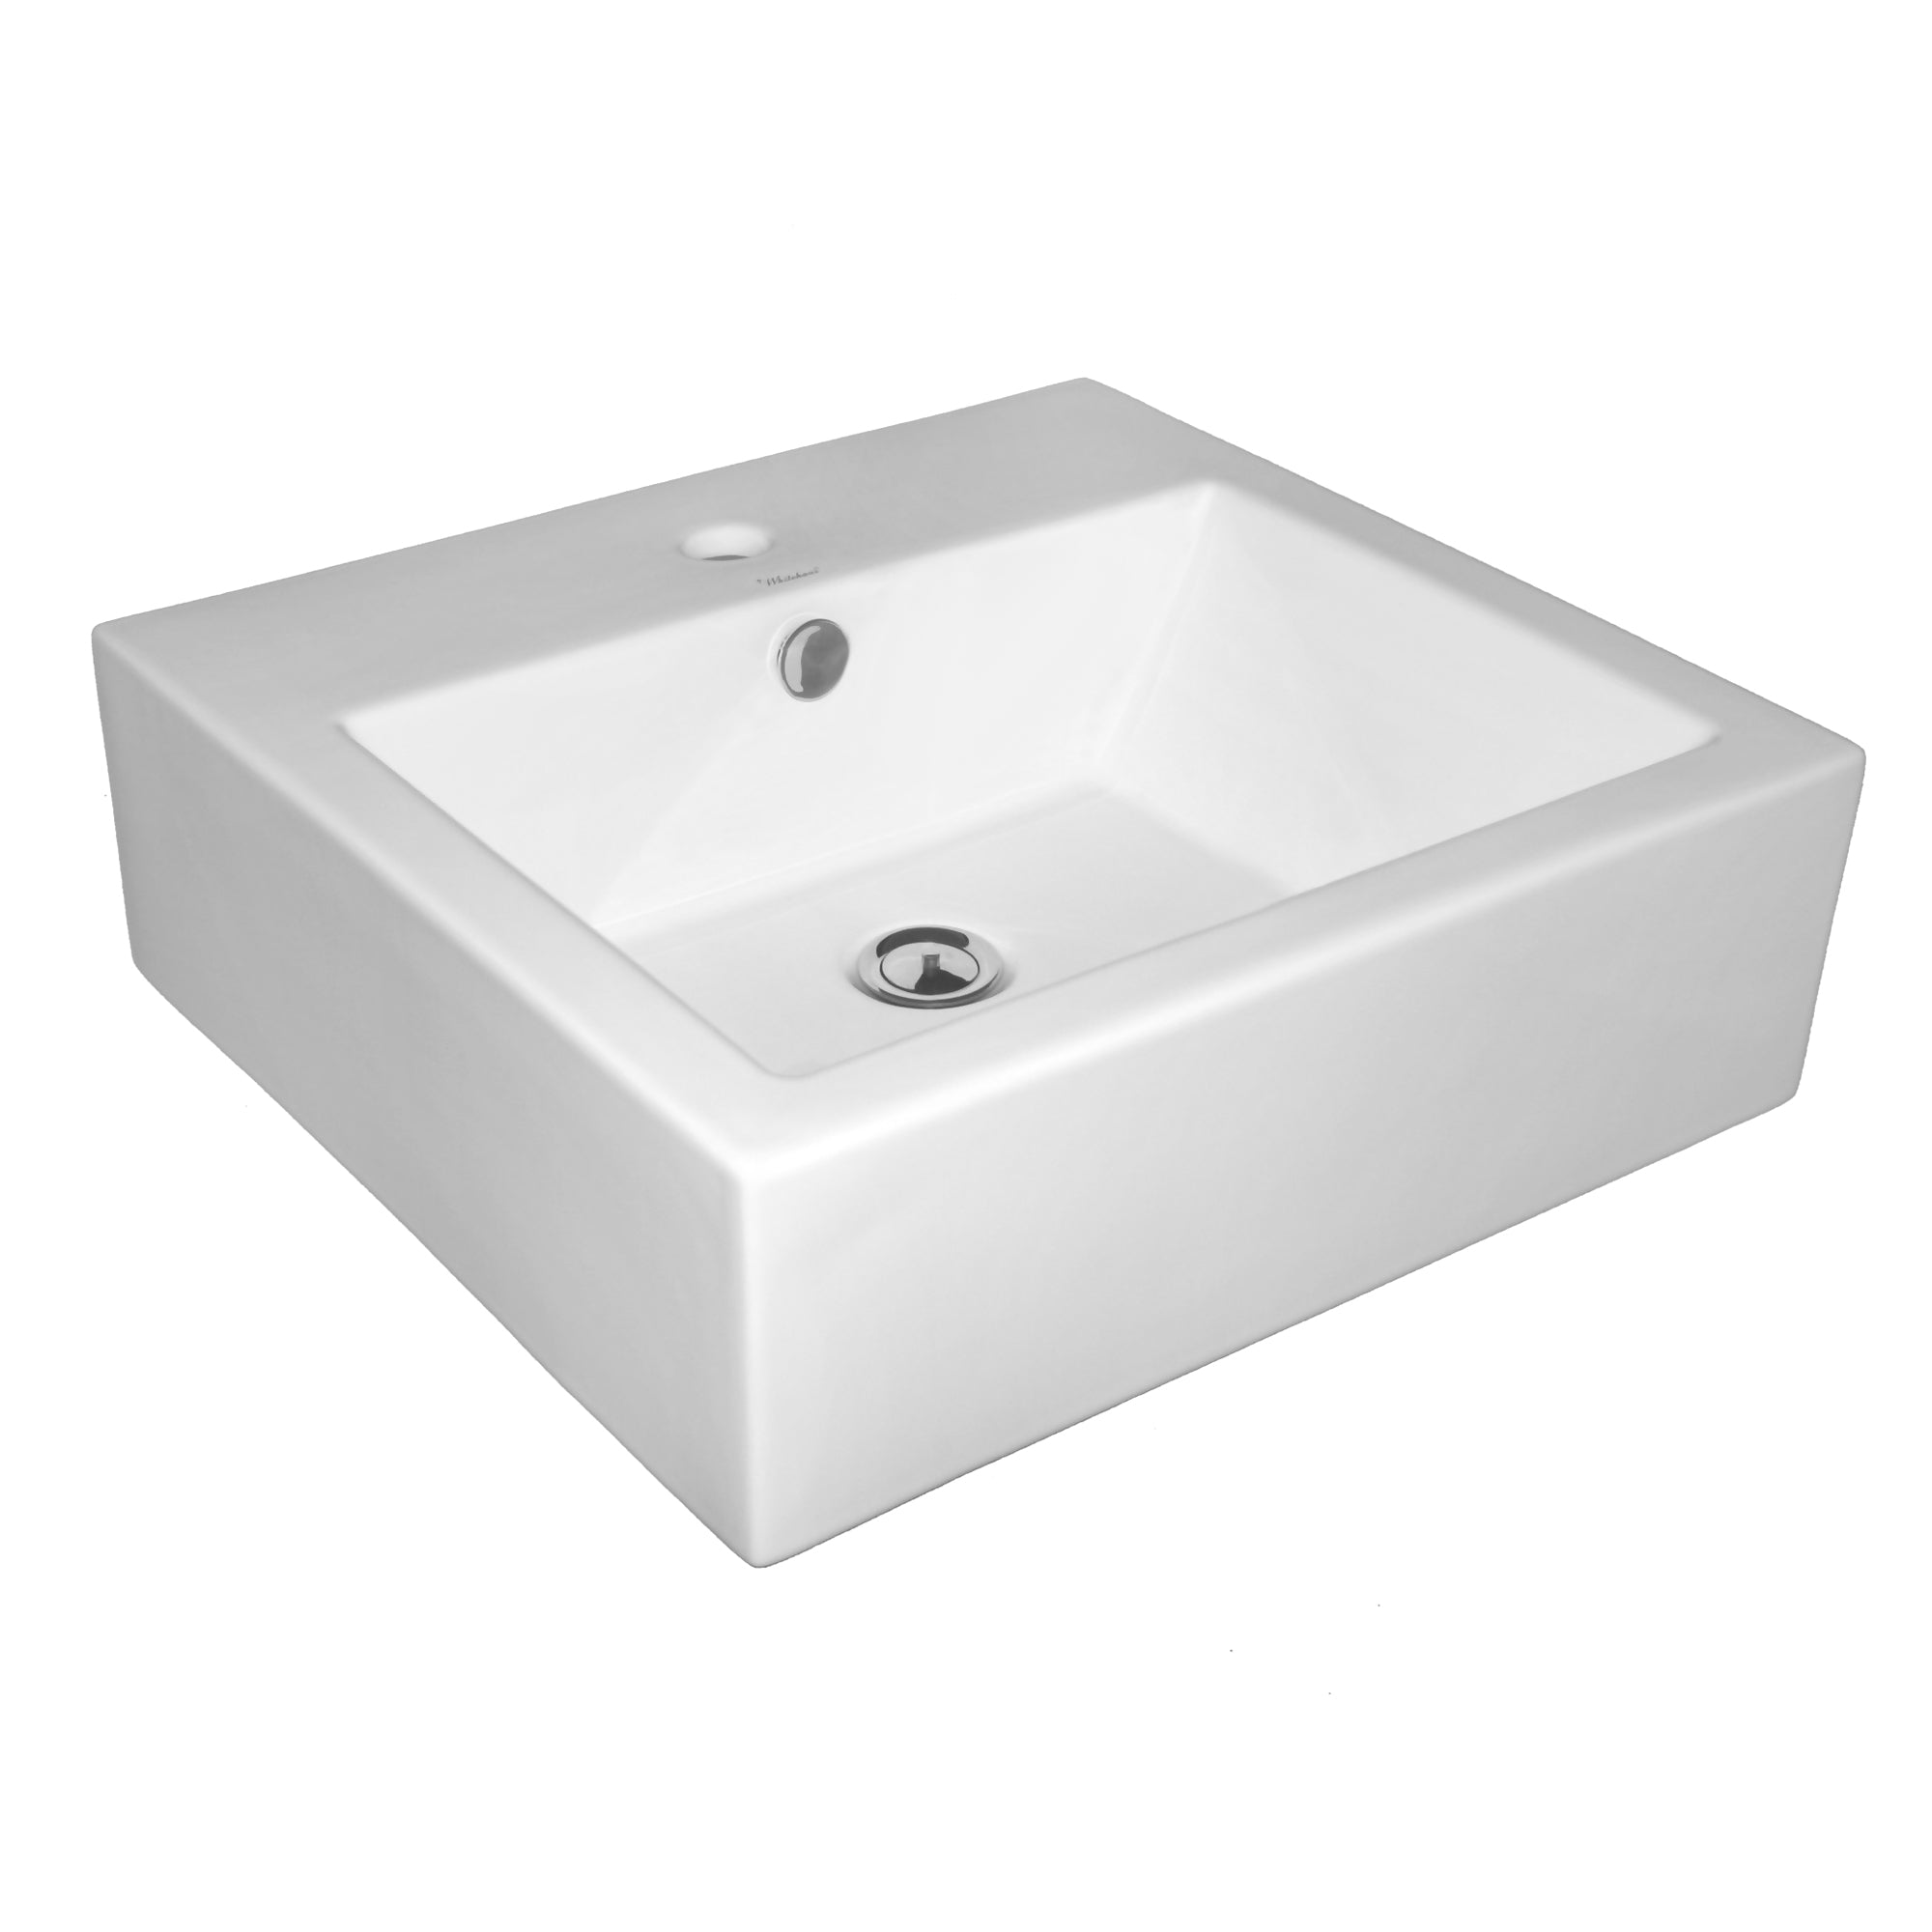 "Isabella Collection 19"" Square Wall Mount Basin with Overflow, Single Faucet Hole and Rear Center Drain"